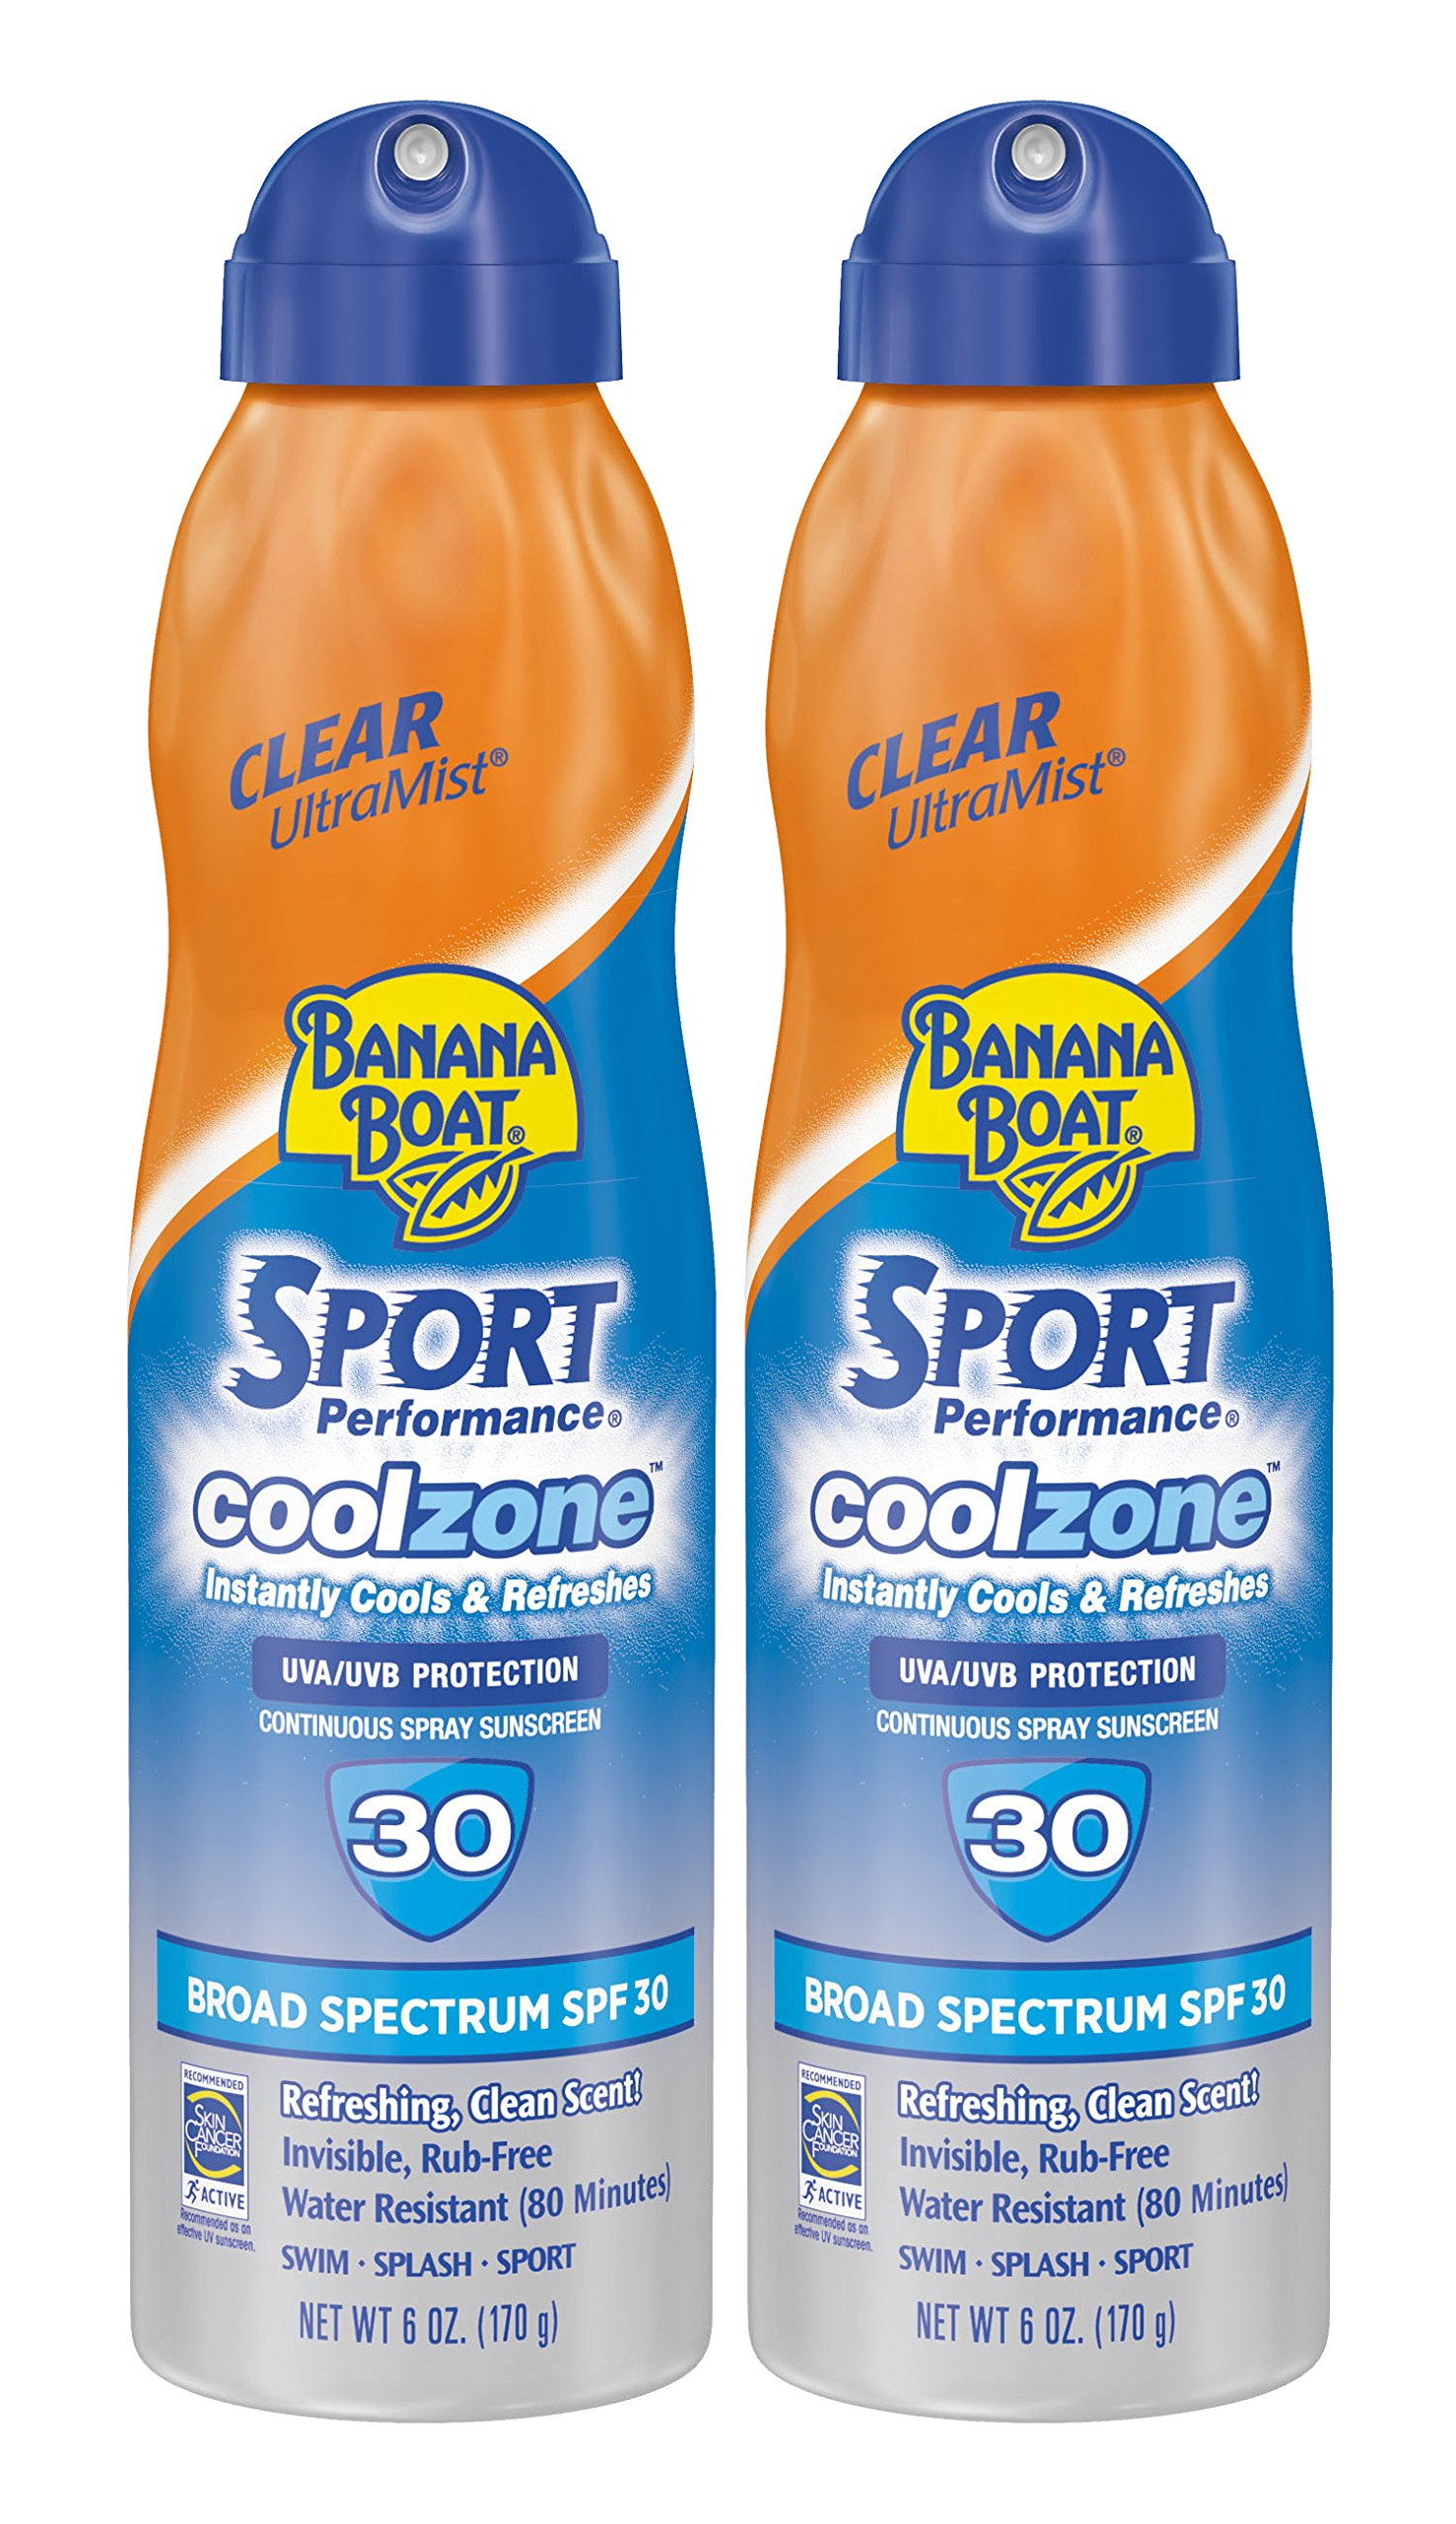 Banana Boat Sunscreen Sport Performance Coolzone, Broad Spectrum Sunscreen Spray - SPF 30-6 Ounce Twin Pack